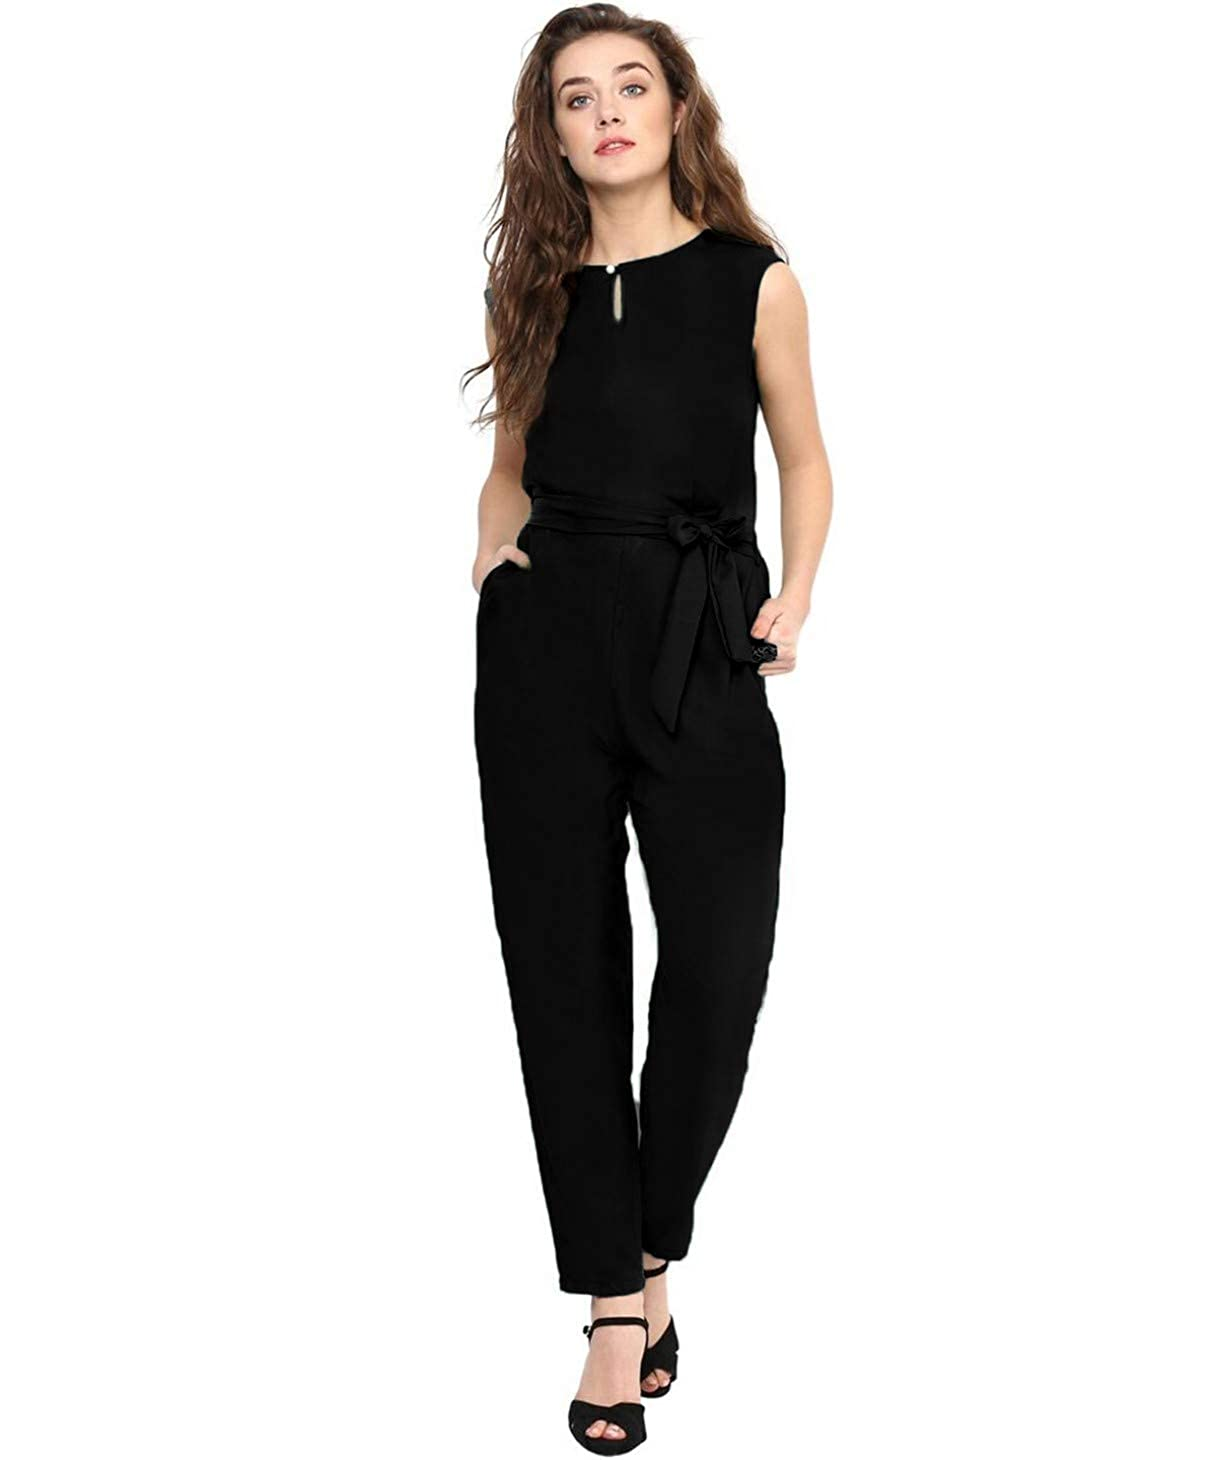 403998941ba4 Uptownie Lite Women s Crepe Keyhole Jumpsuit  Amazon.in  Clothing    Accessories